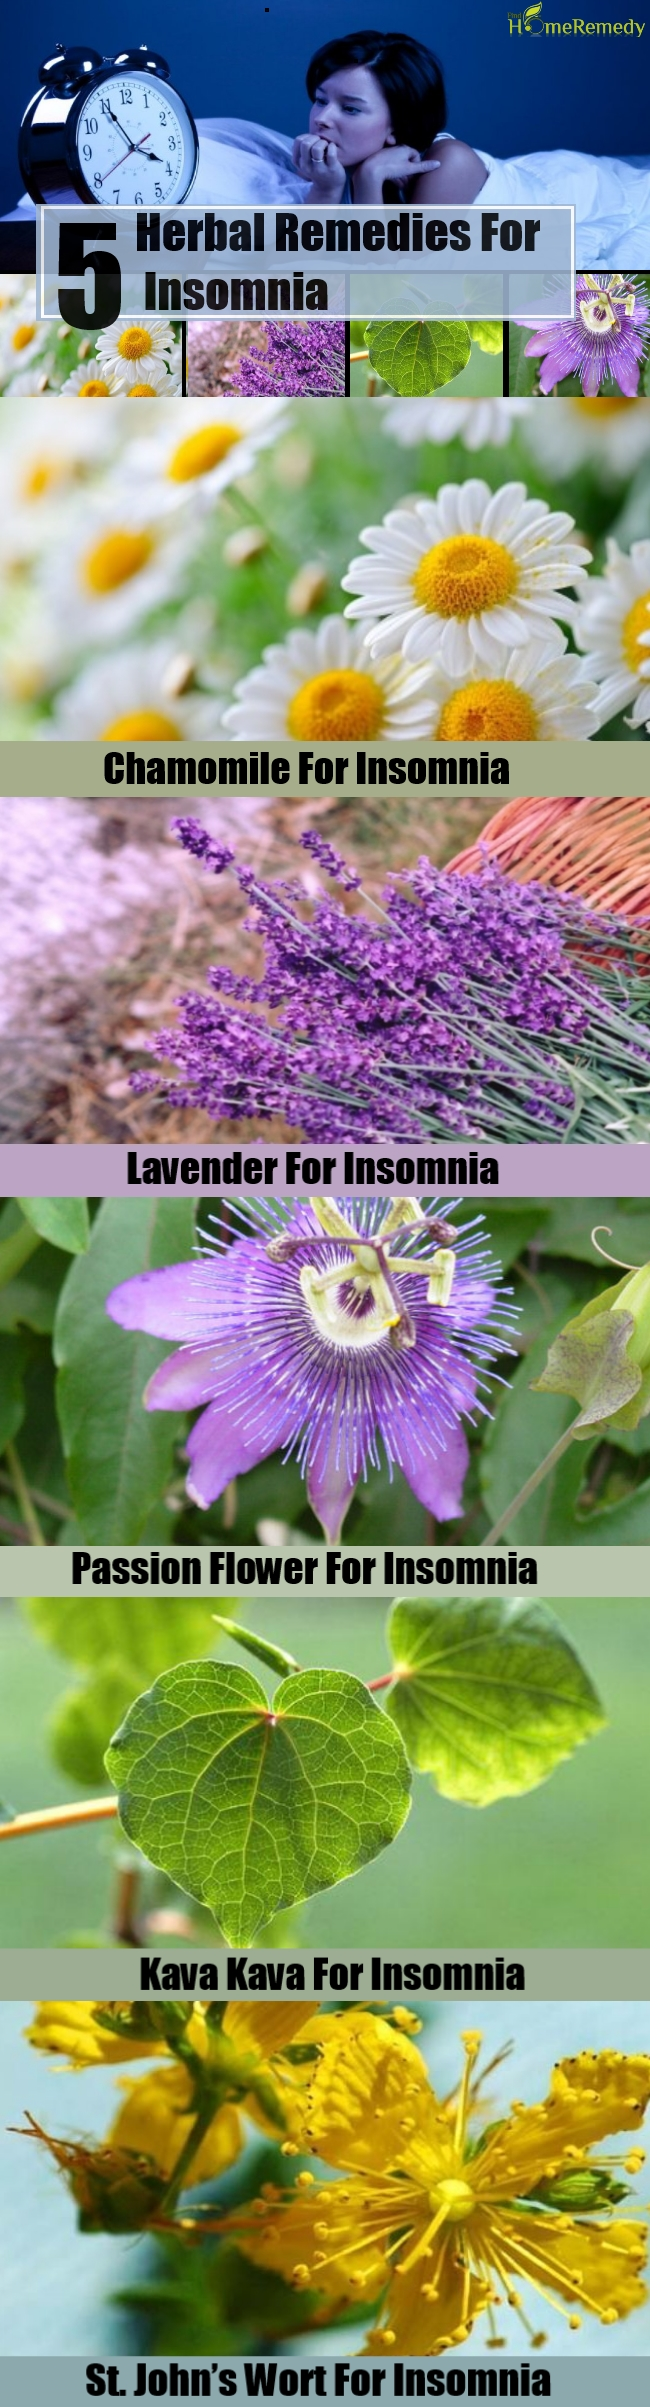 5 Herbal Remedies For Insomnia